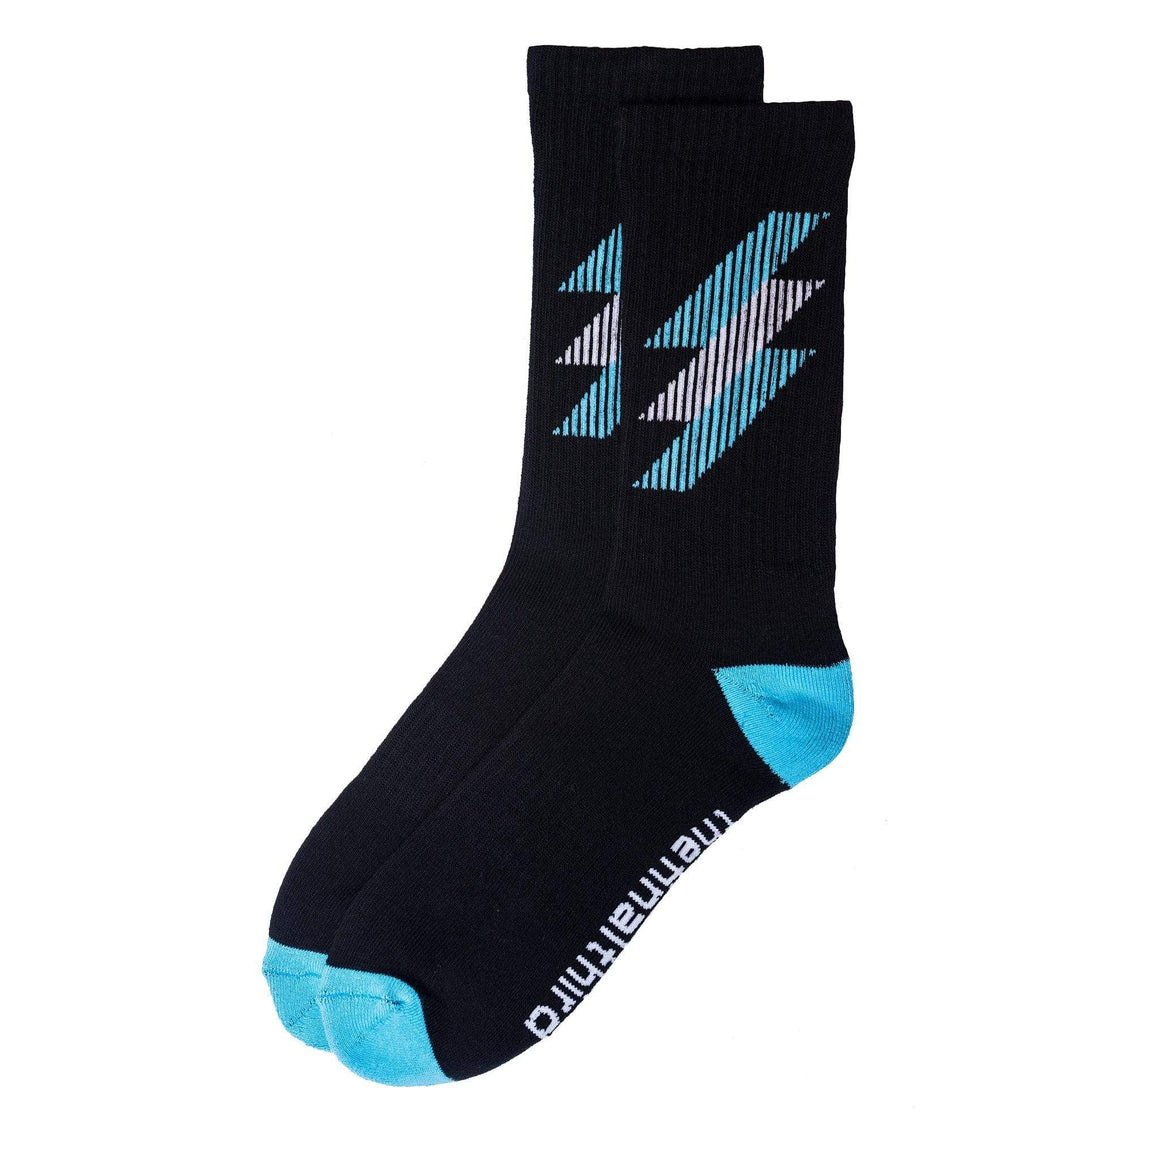 Football Socks - 2018 Argentina away football shirt - Football Shirt Collective